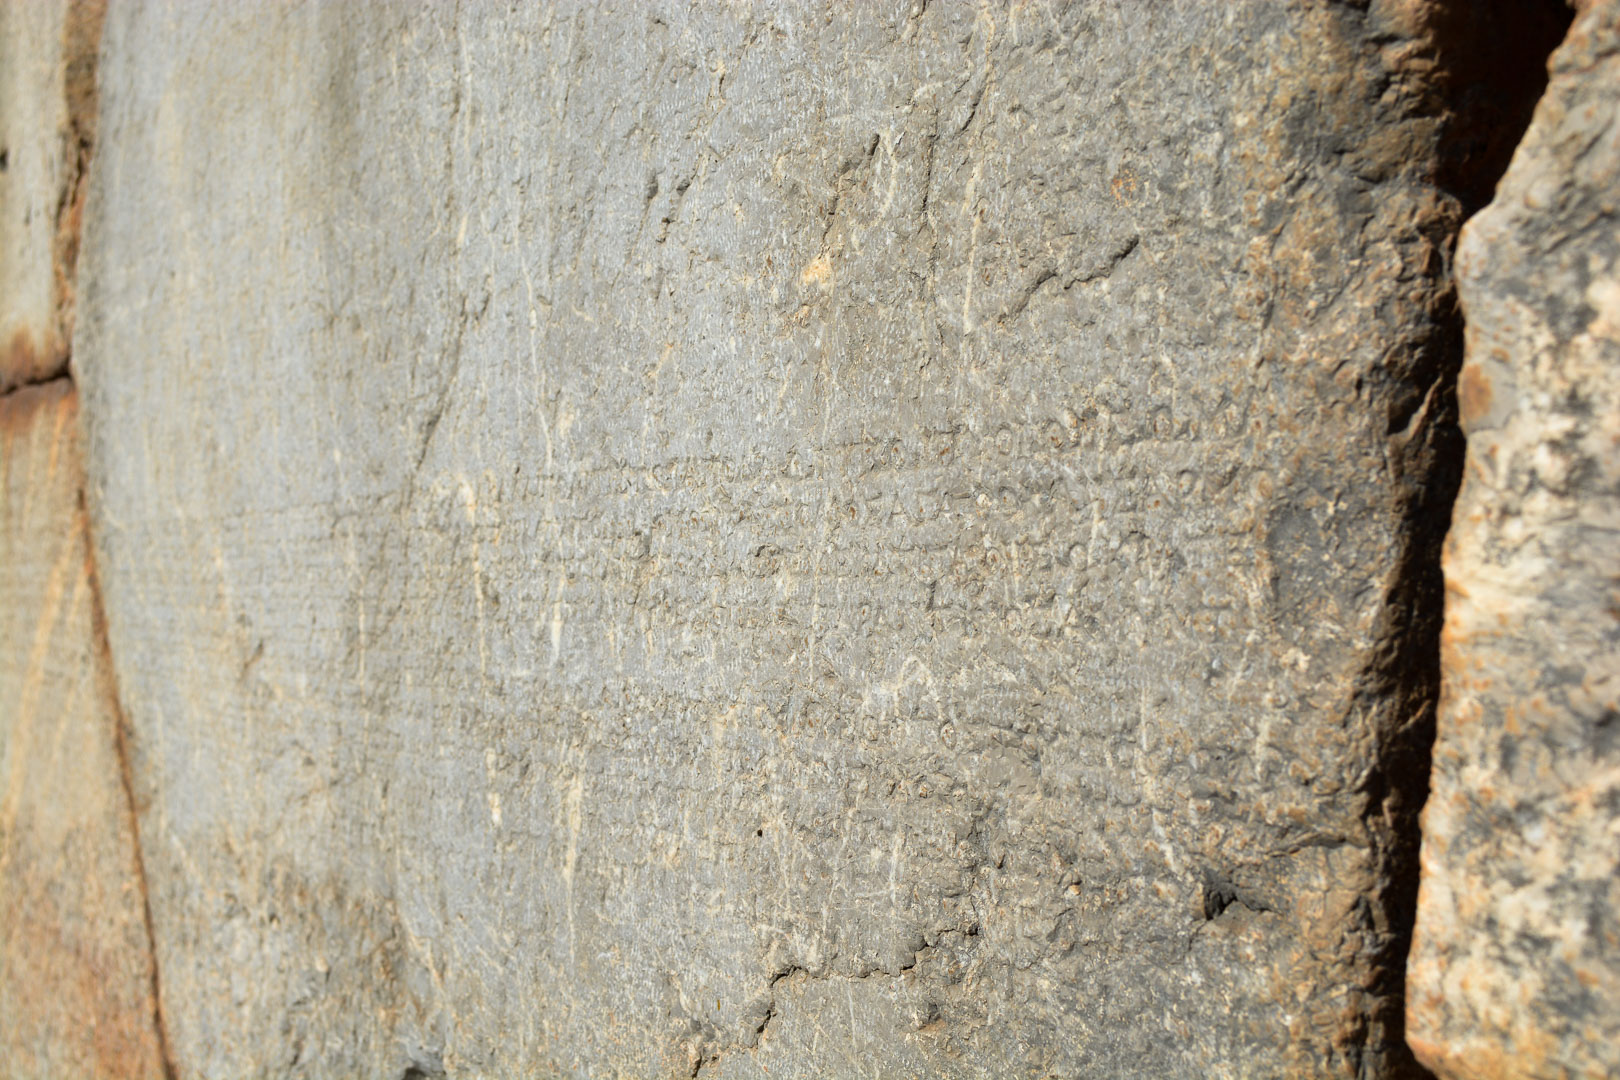 Names of freed slaves carved into the stone